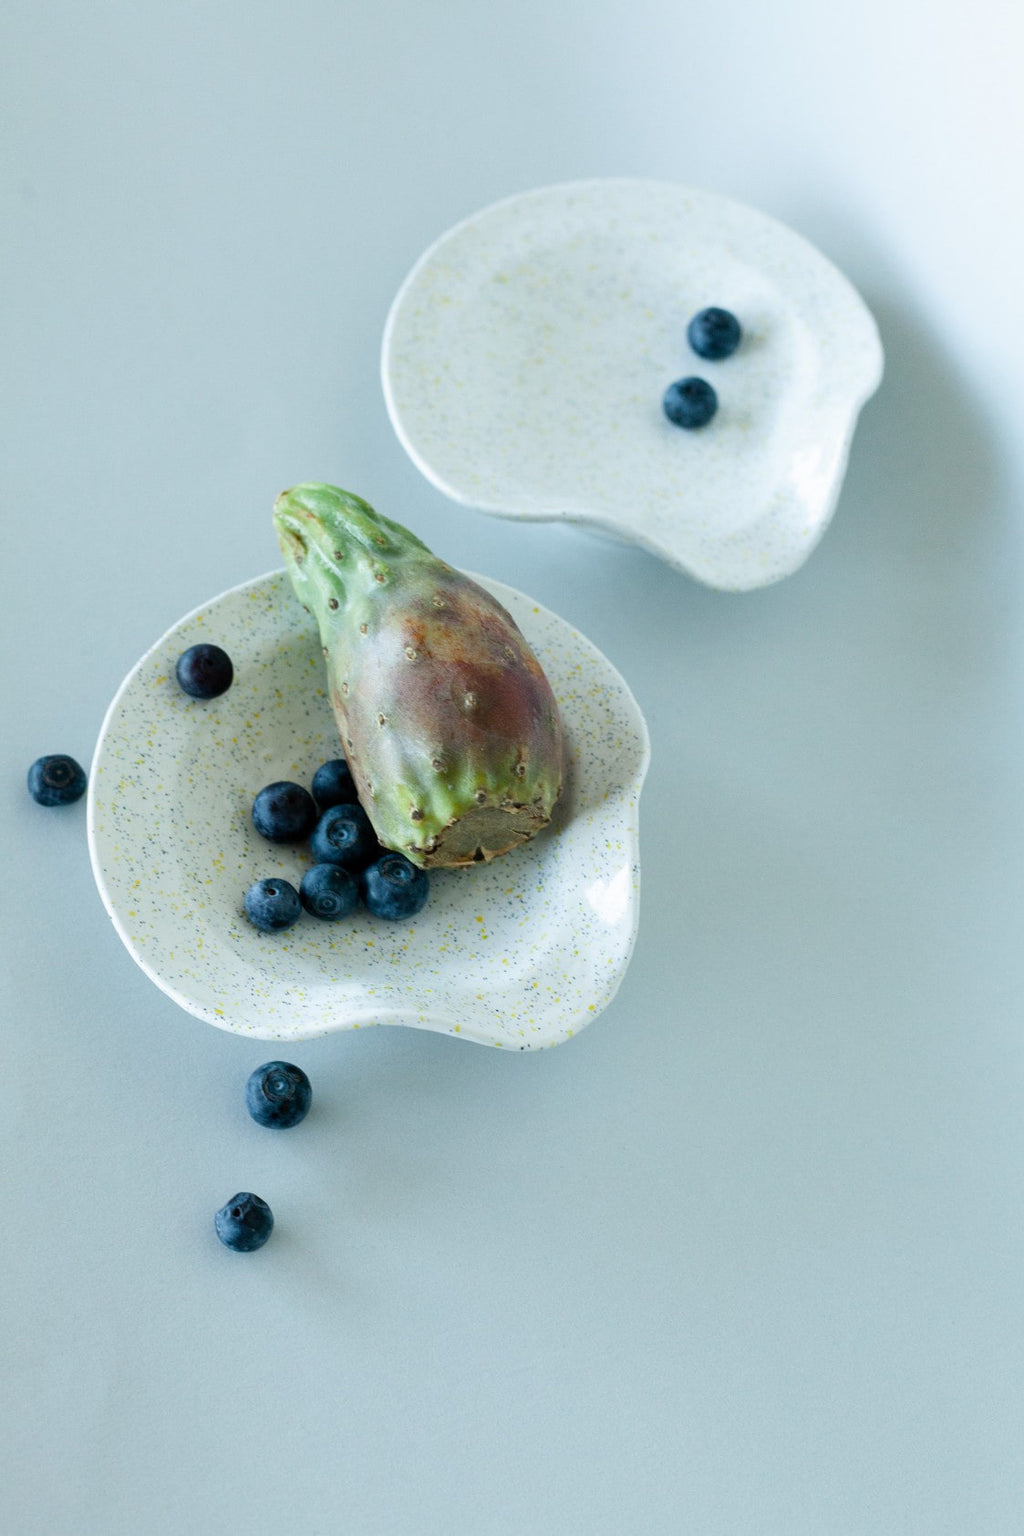 Set of 2 Speckled Ceramic Curved Small Plates - Fallow Home.